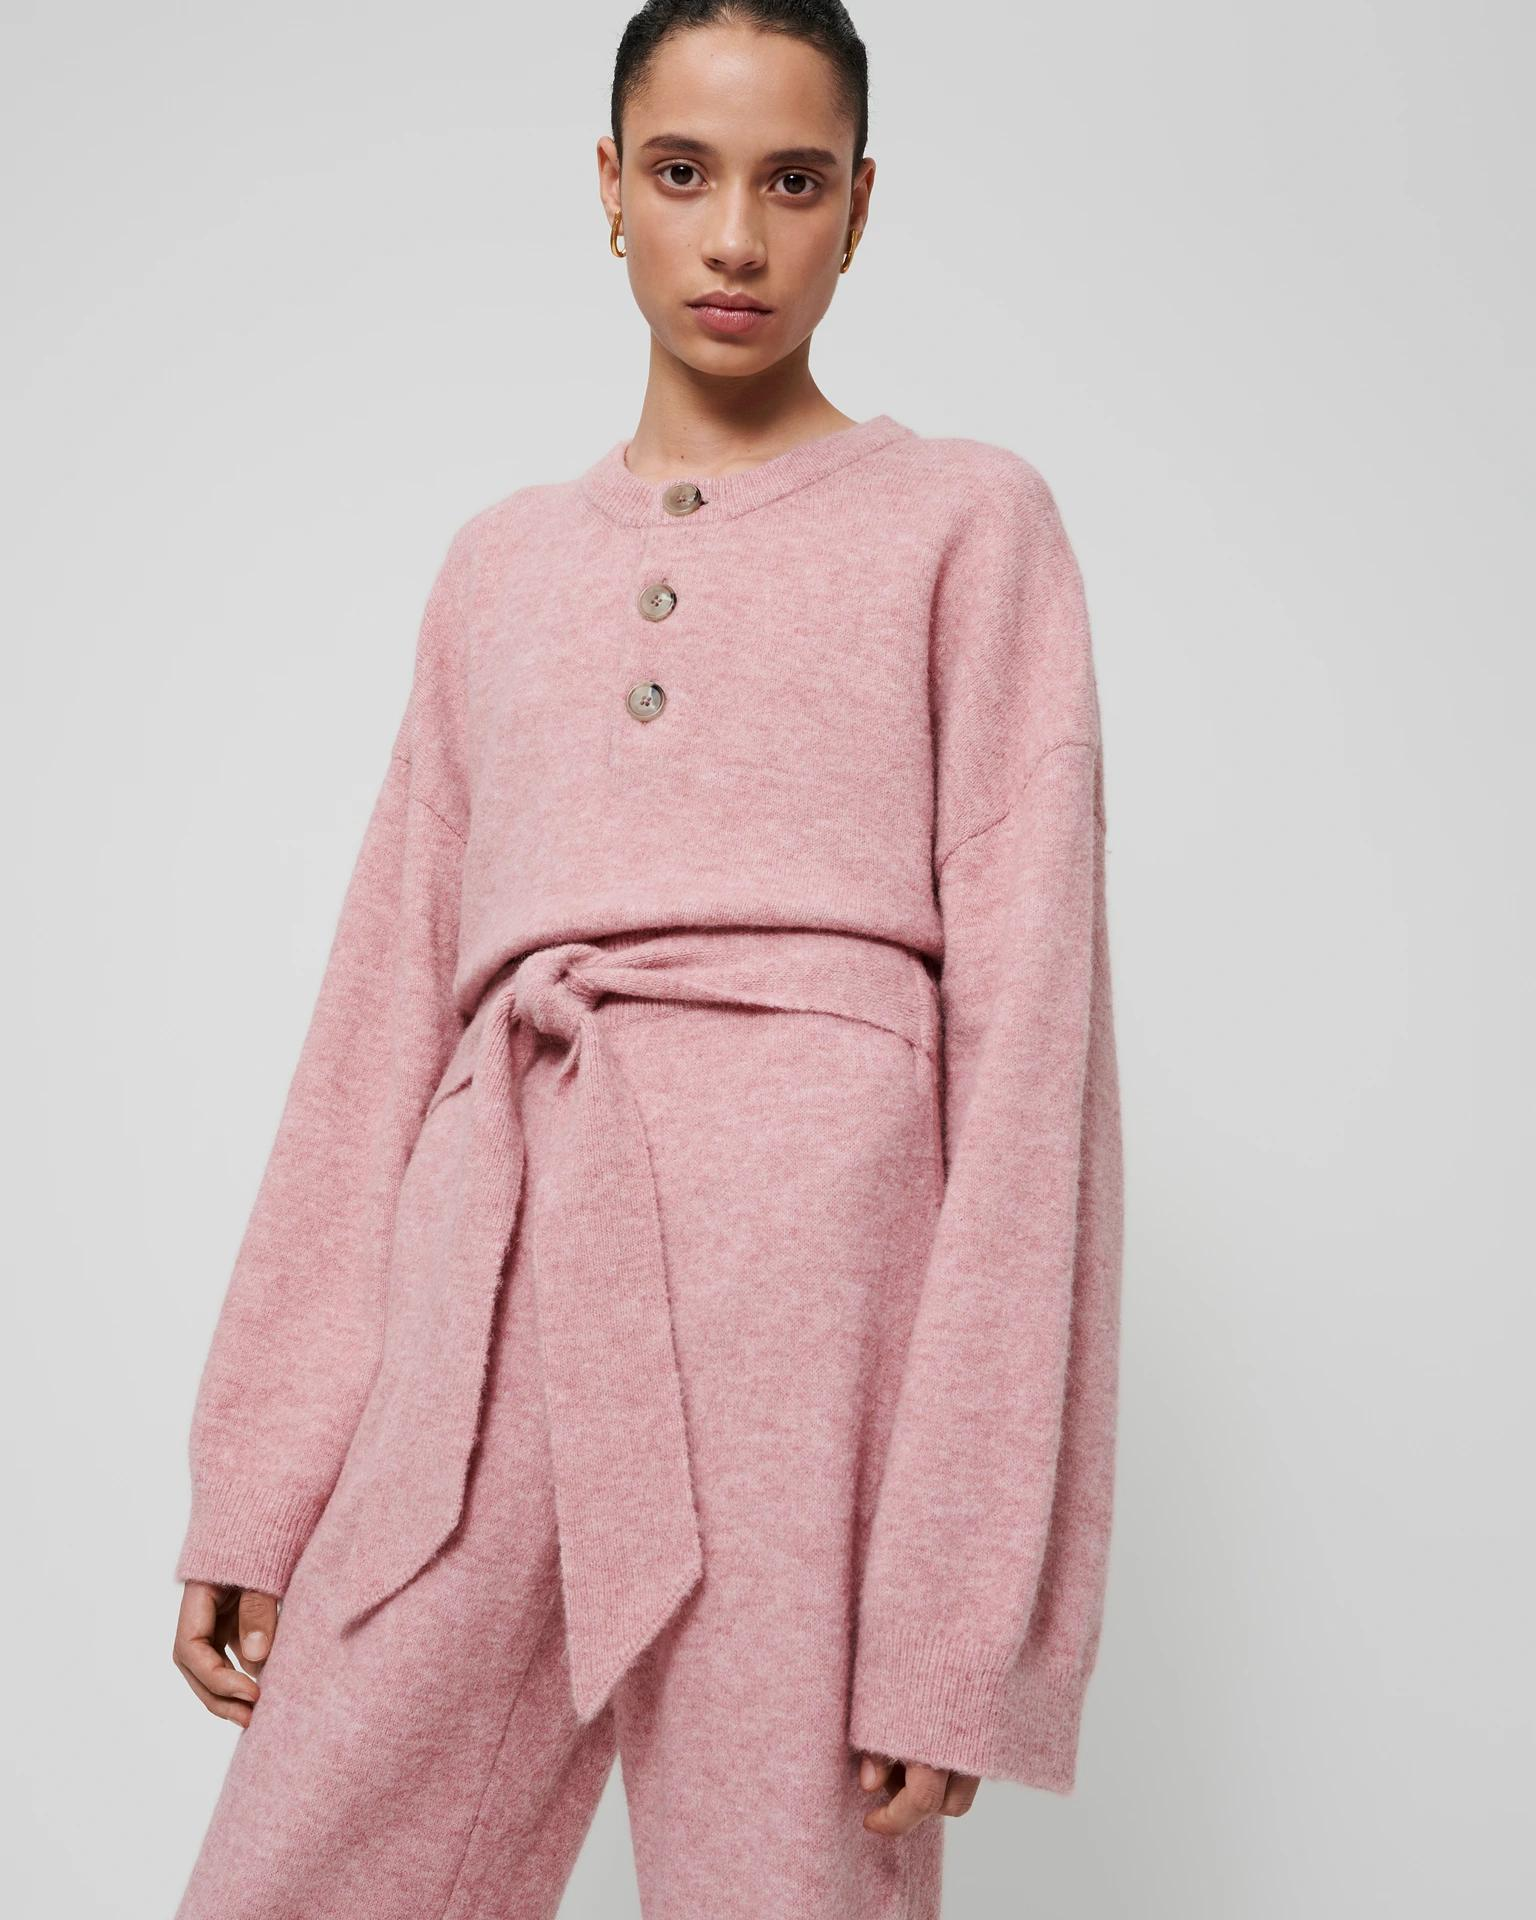 LAMEE - Fluffy-knit sweater - Washed-pink